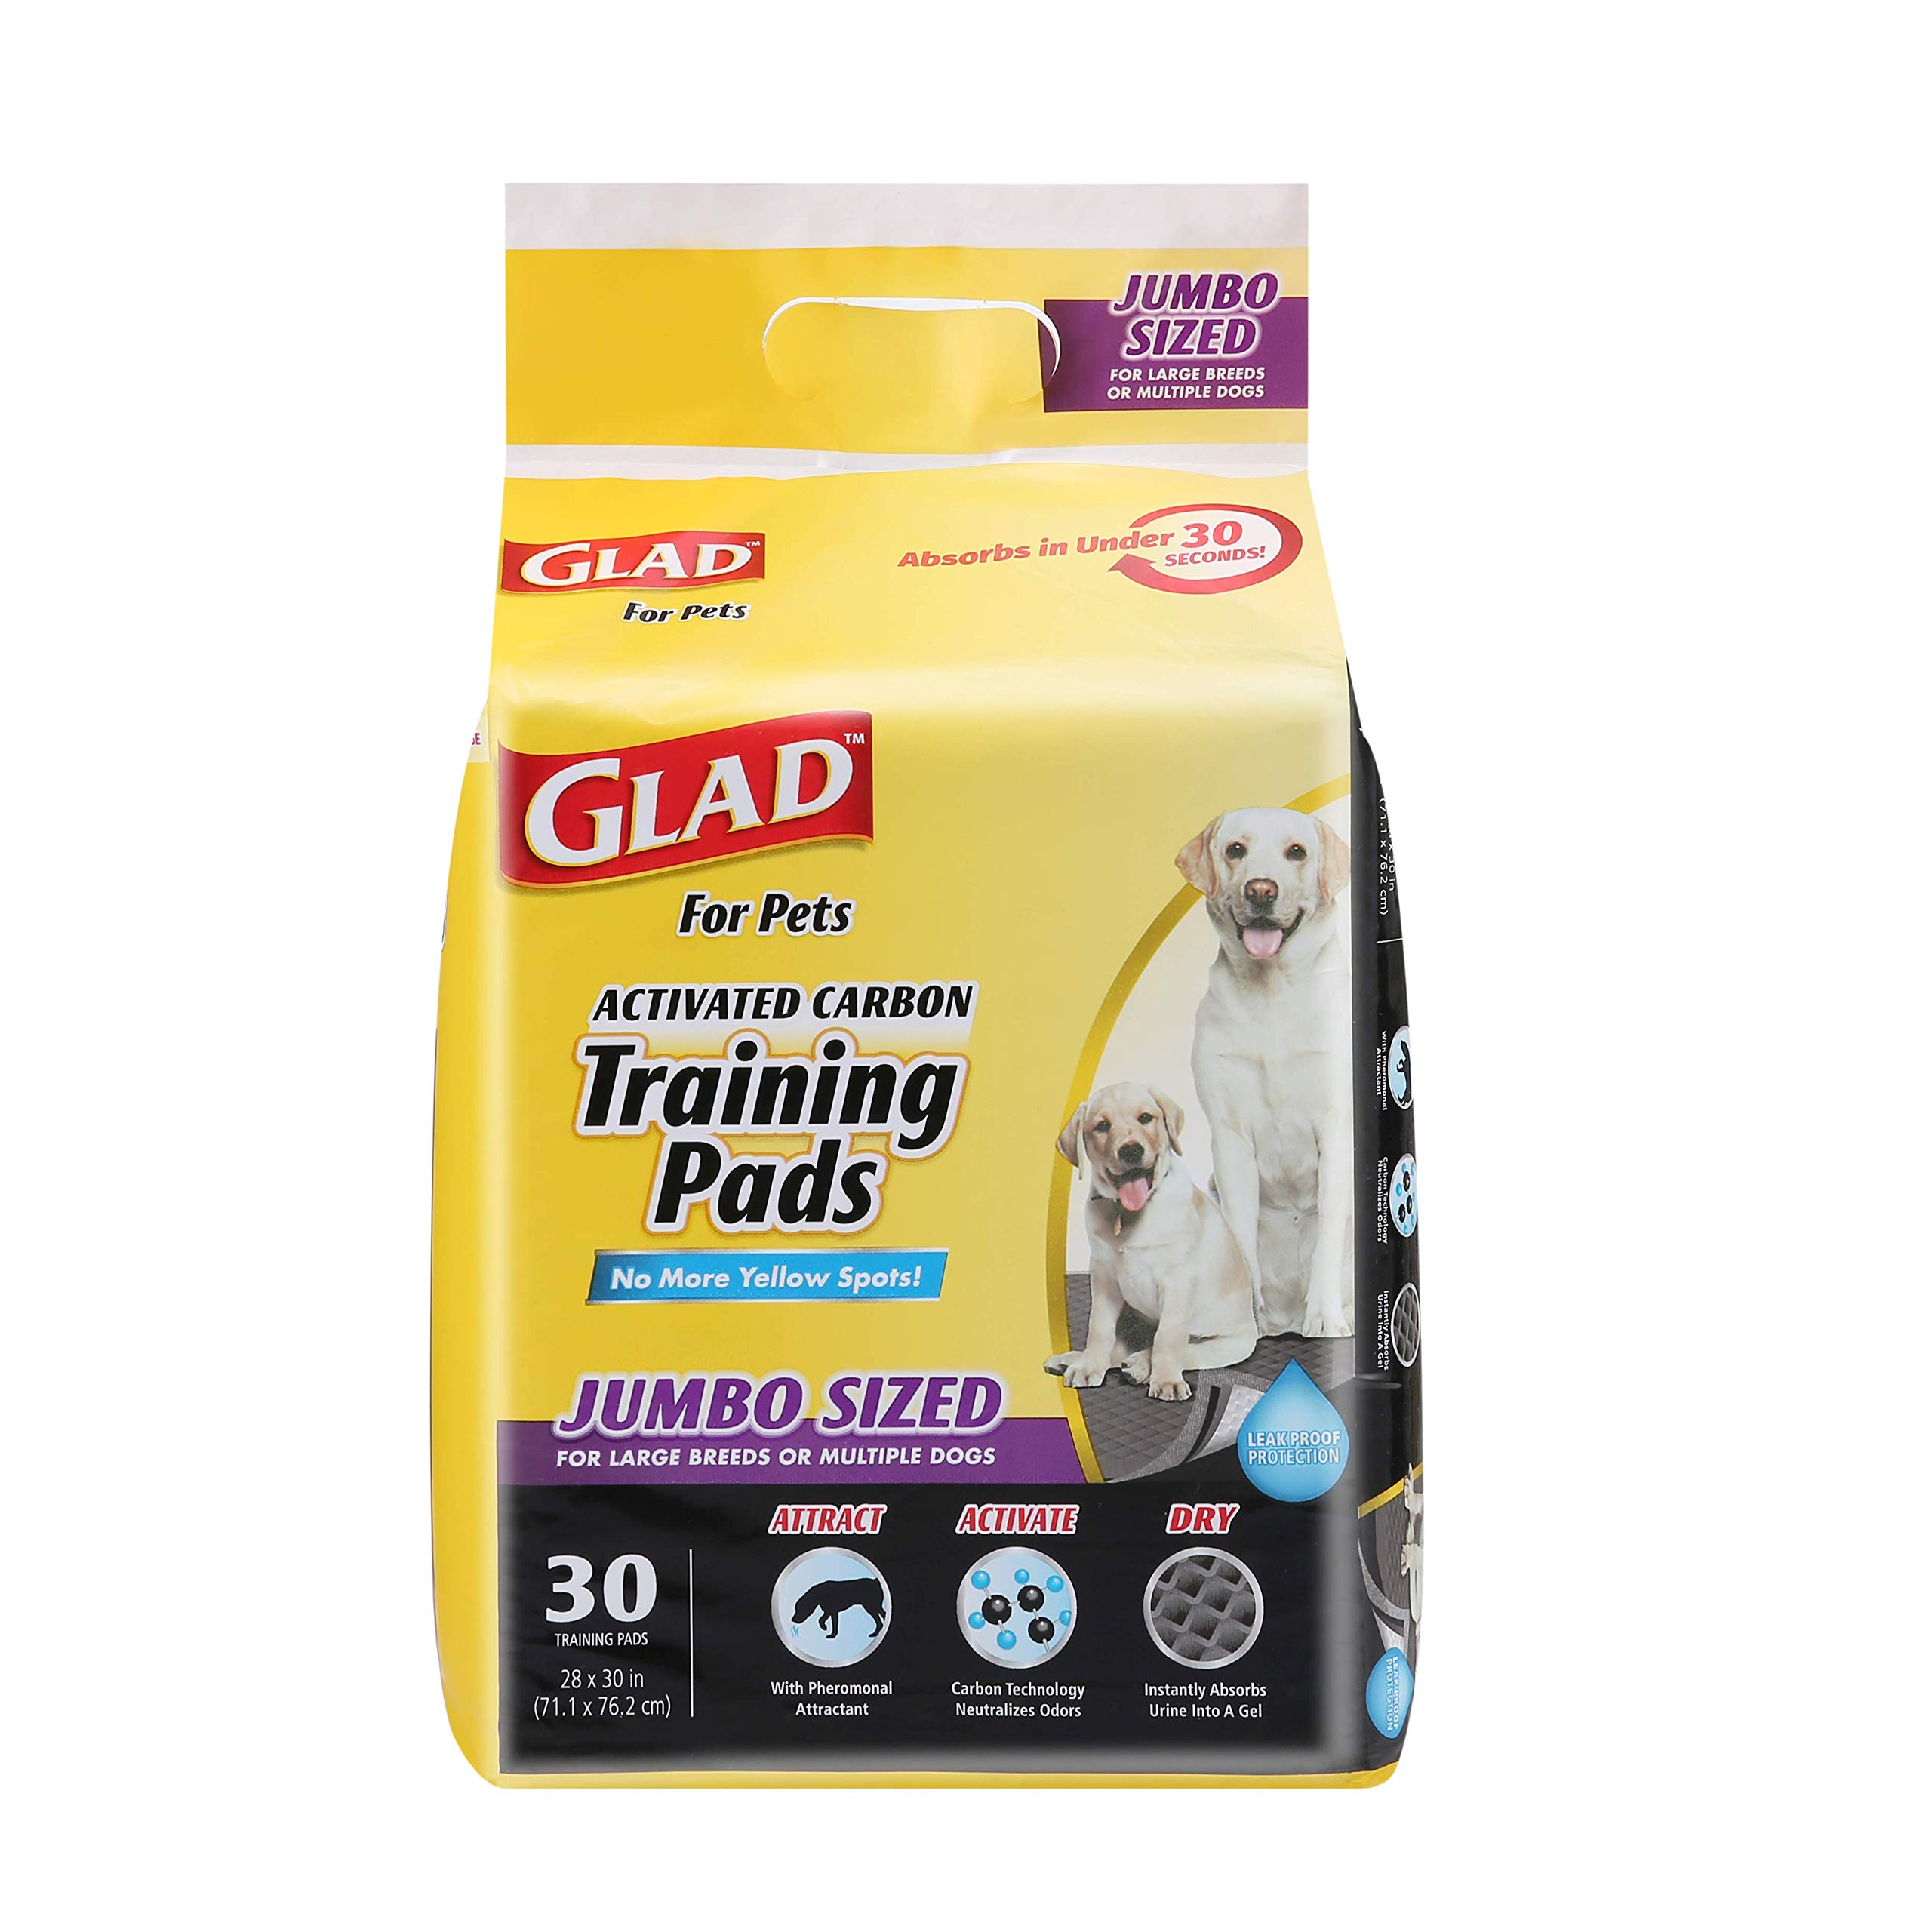 Glad for Pets JUMBO-SIZE Charcoal Puppy Pads | Black Training Pads That ABSORB & Neutralize Urine Instantly | New & Improved Quality Puppy Pee Pads, 30 Count